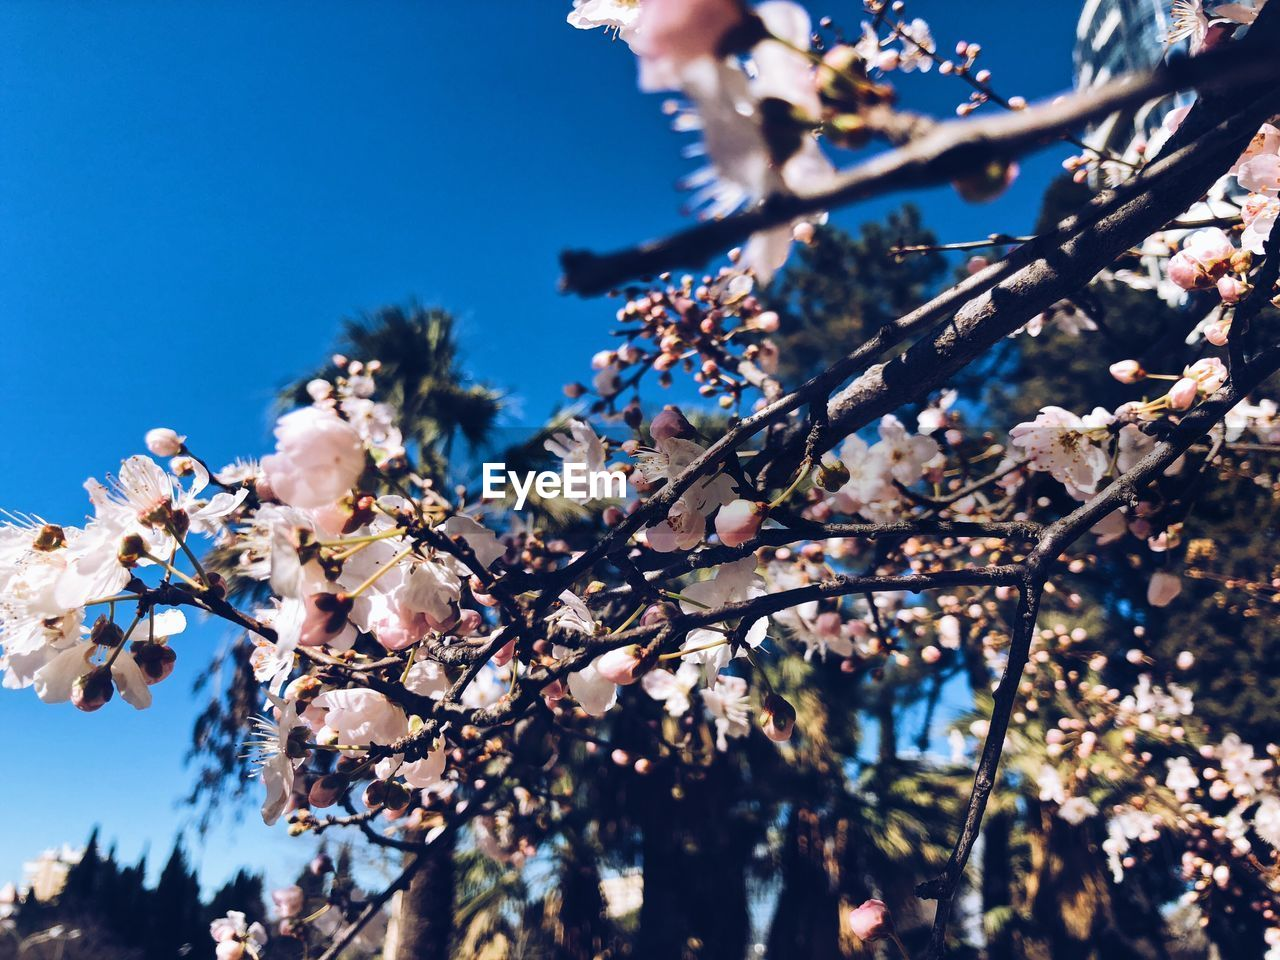 plant, tree, flowering plant, fragility, low angle view, blossom, flower, beauty in nature, growth, branch, vulnerability, freshness, sky, springtime, nature, focus on foreground, day, cherry blossom, close-up, no people, cherry tree, outdoors, flower head, spring